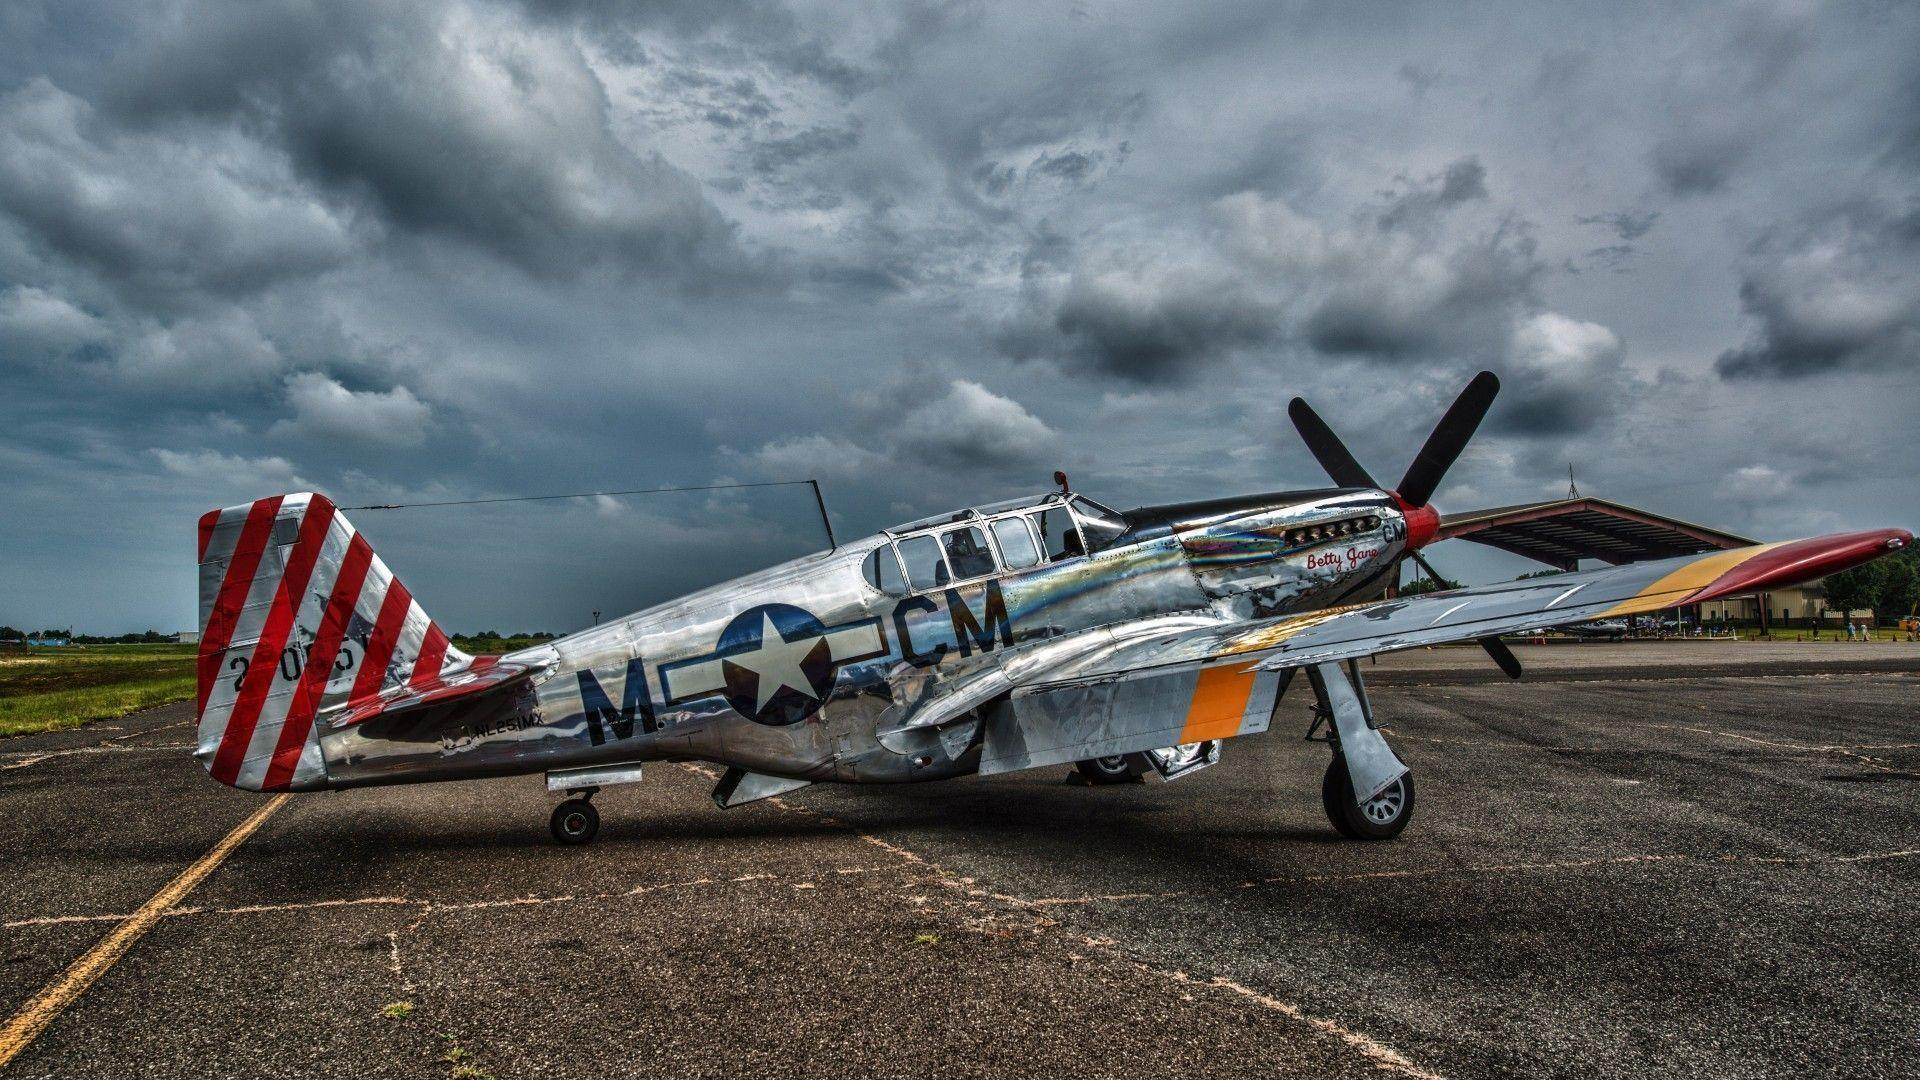 P 51 Mustang Wallpapers Hd Widescreen 11 HD Wallpapers